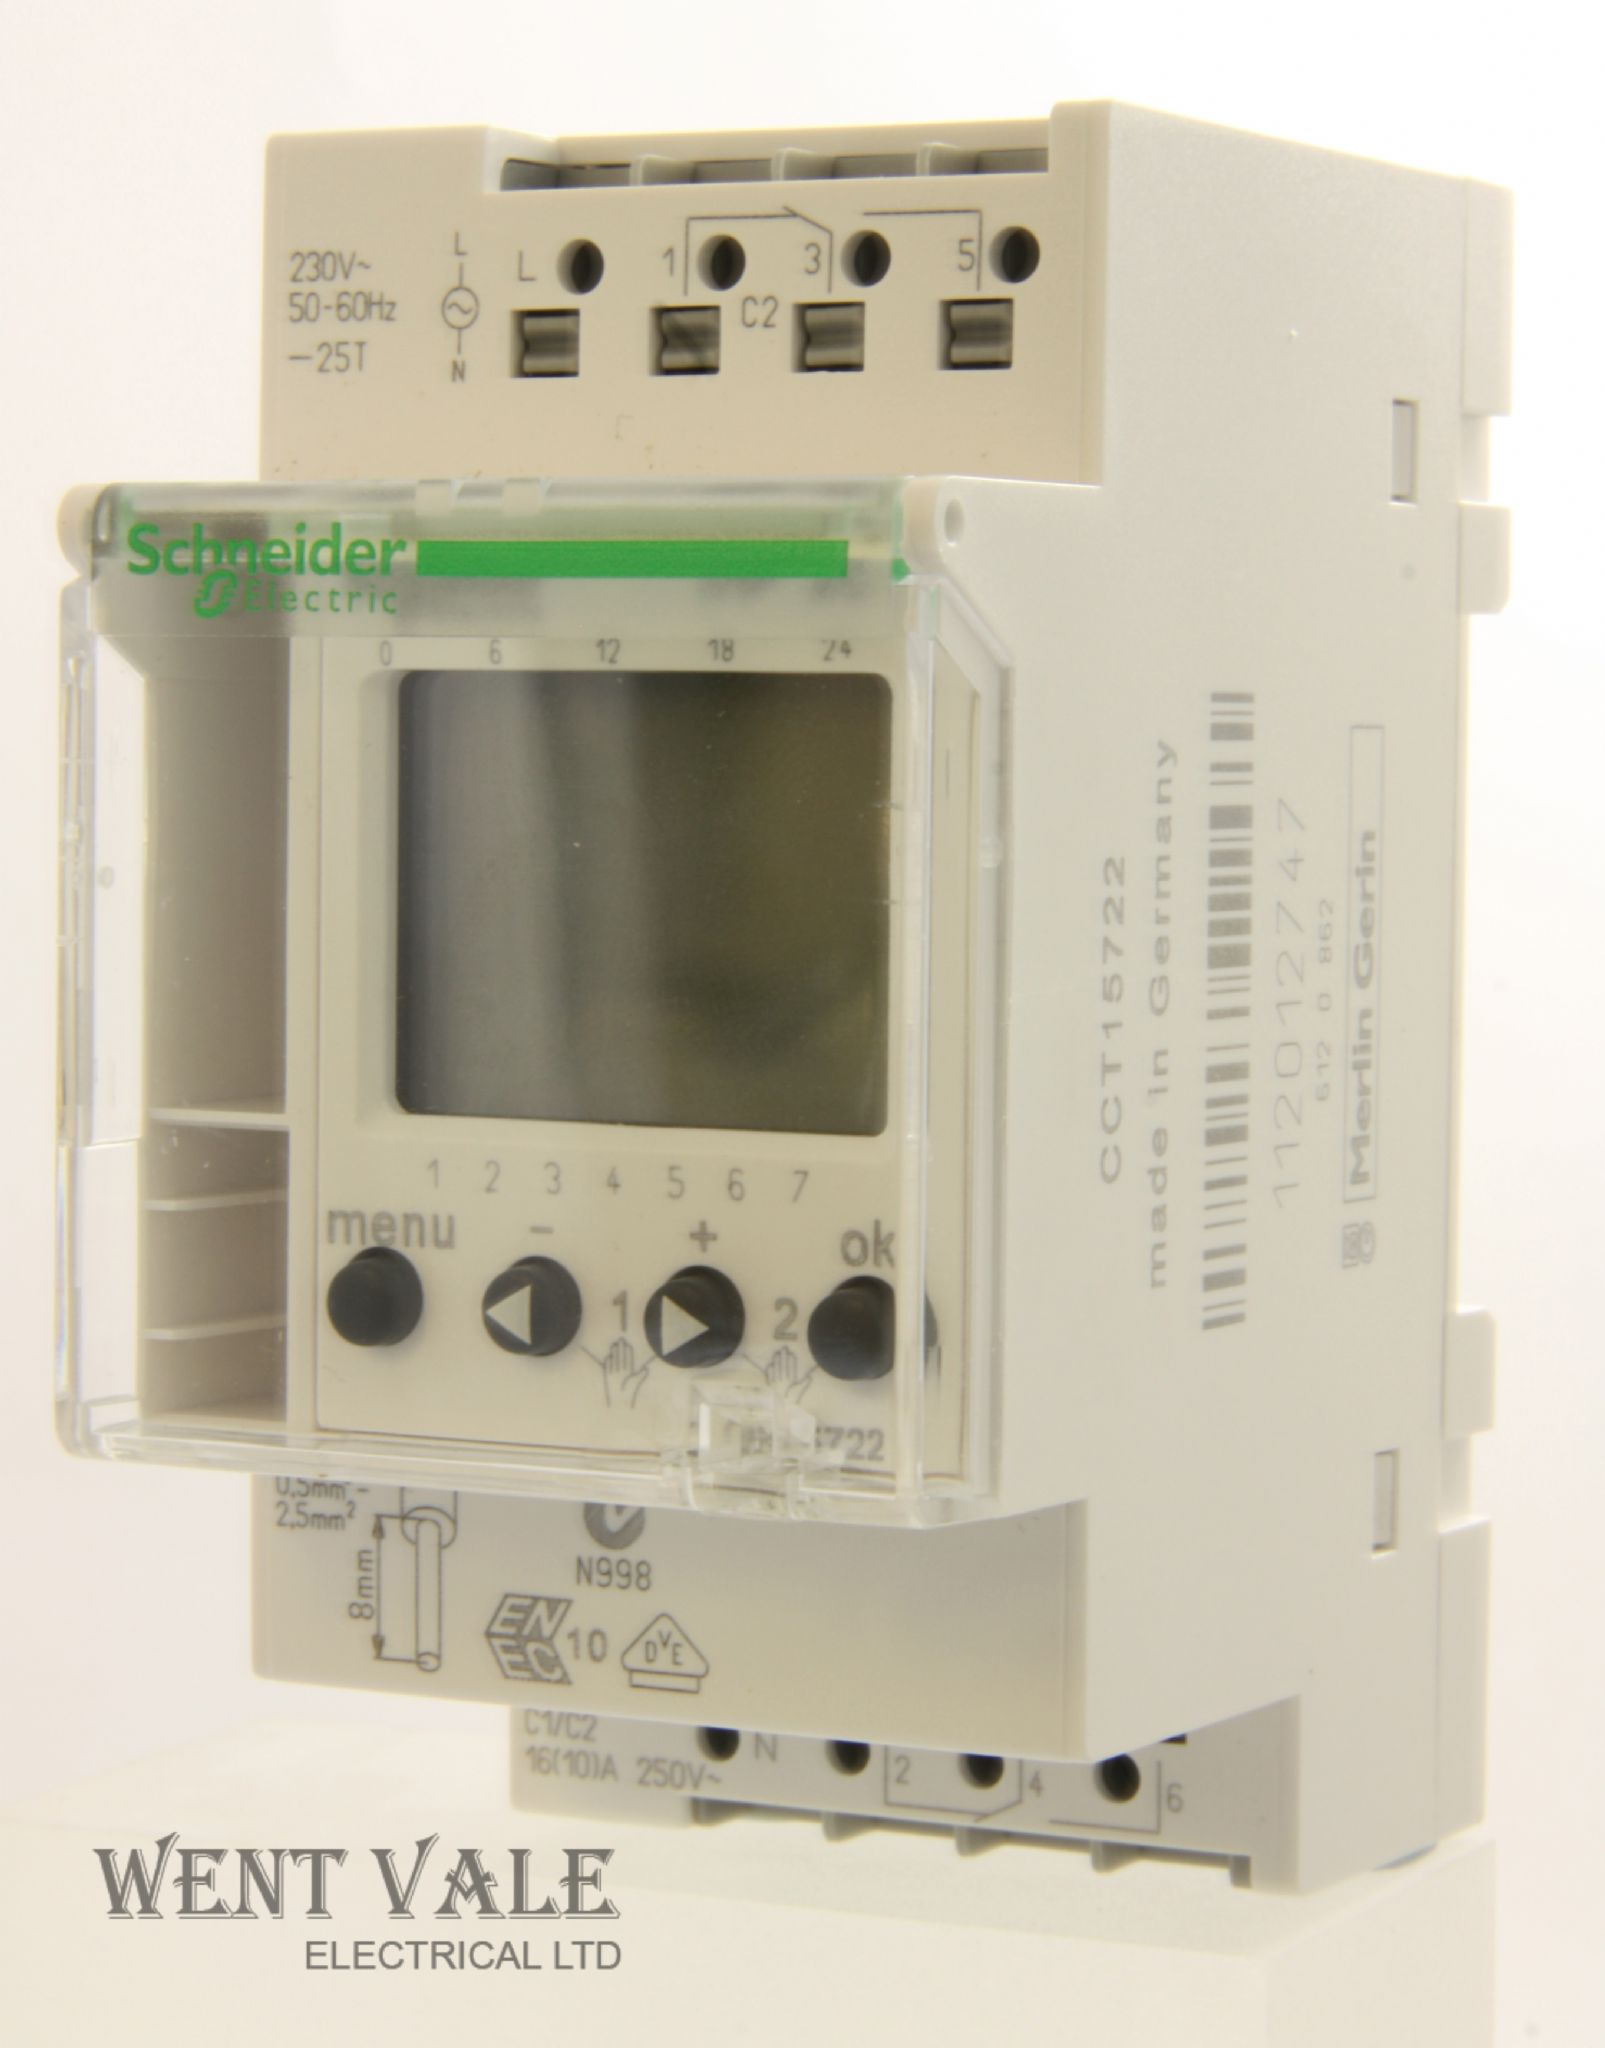 Schneider Multi 9 - CCT15722 IHP - 2 Channel 24 Hour 7 Day 16a Time Switch